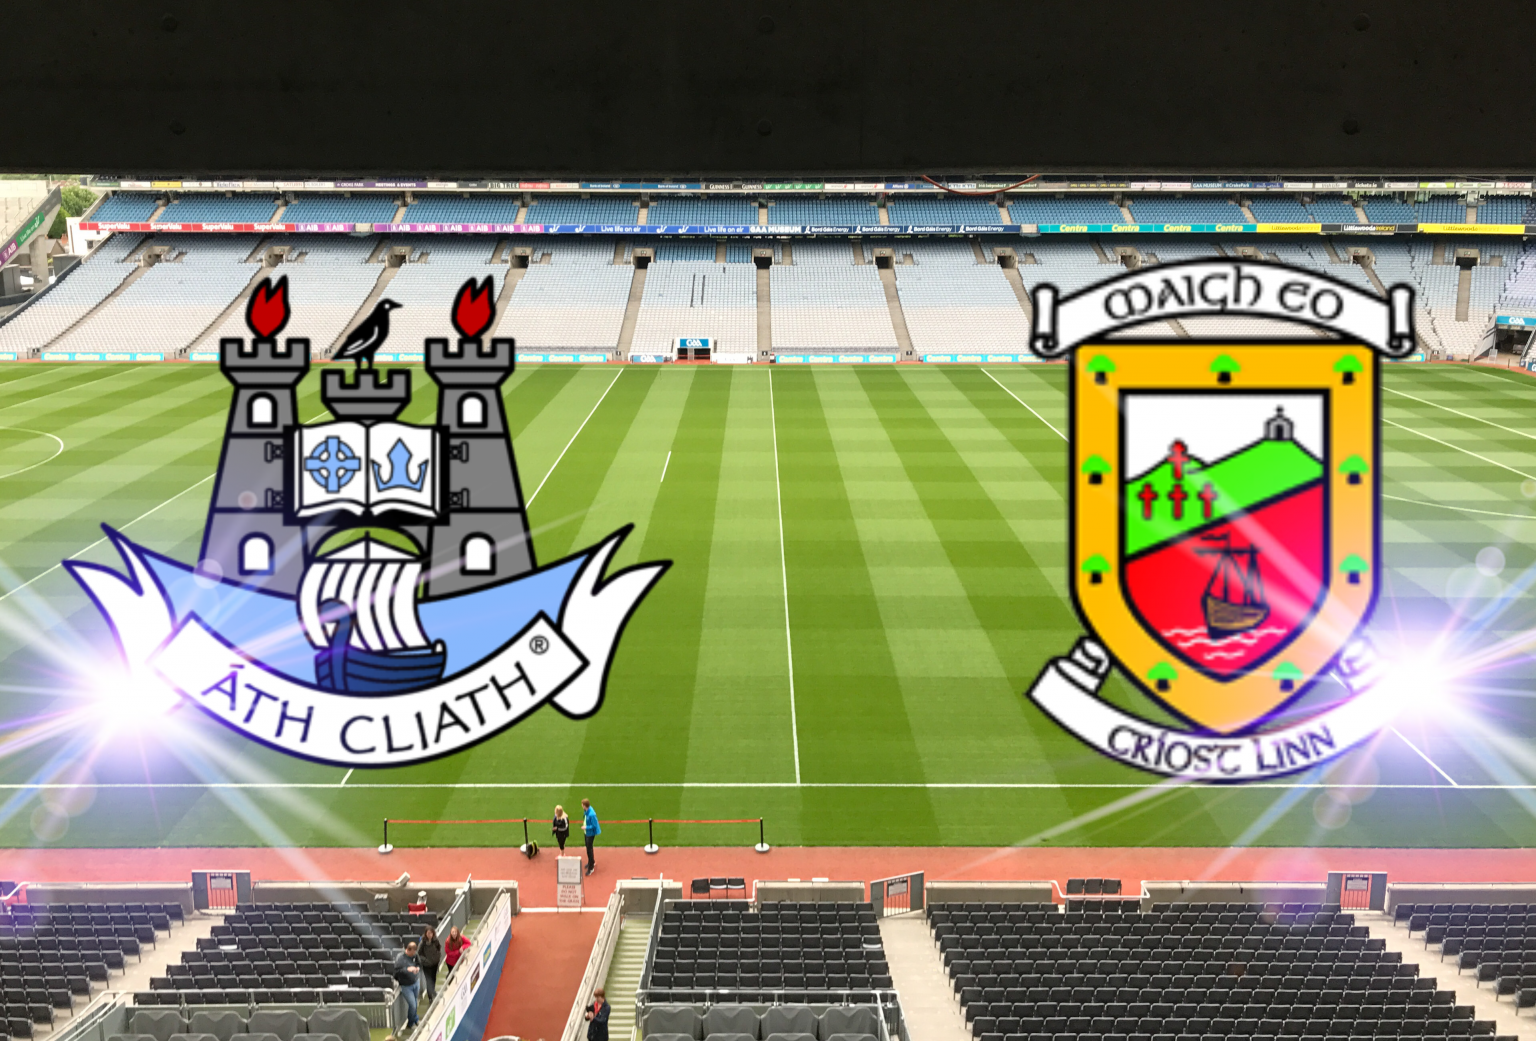 Croke Park pitch with the Dublin and Mayo crests superimposed Over it. Both sides meet in the All Ireland semi finals and the Mayo hype has gone into overdrive